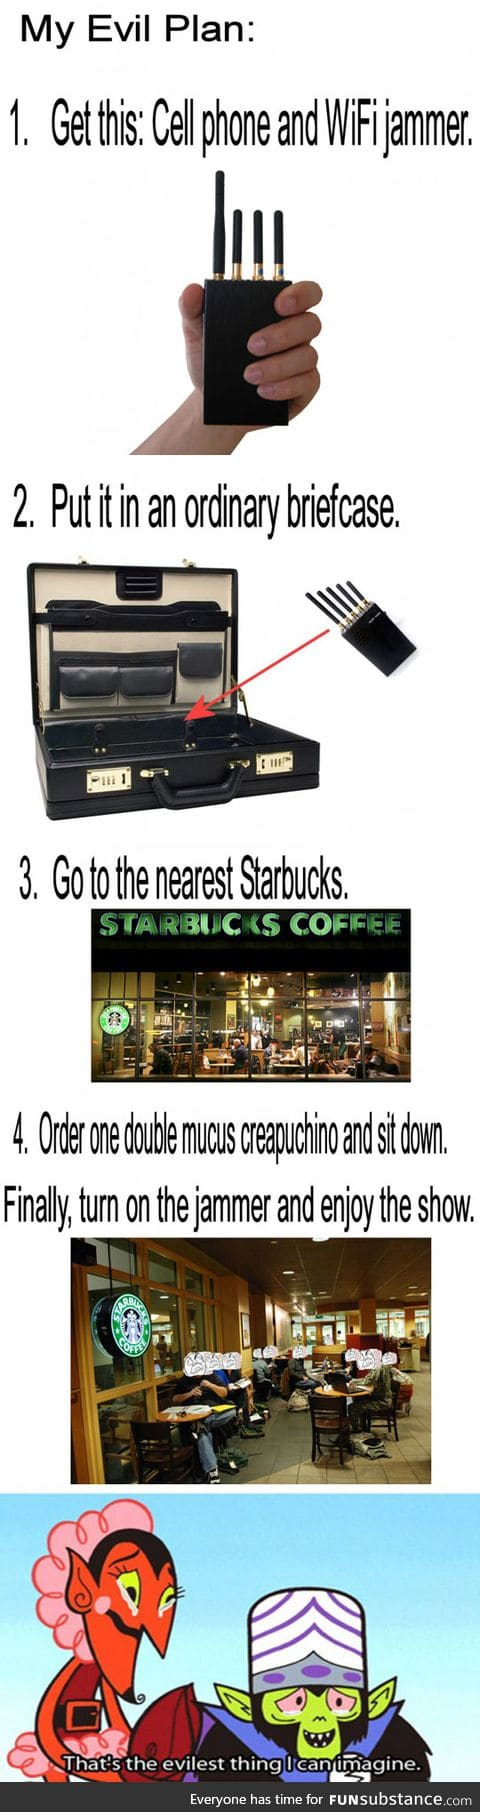 Evil Starbucks plan